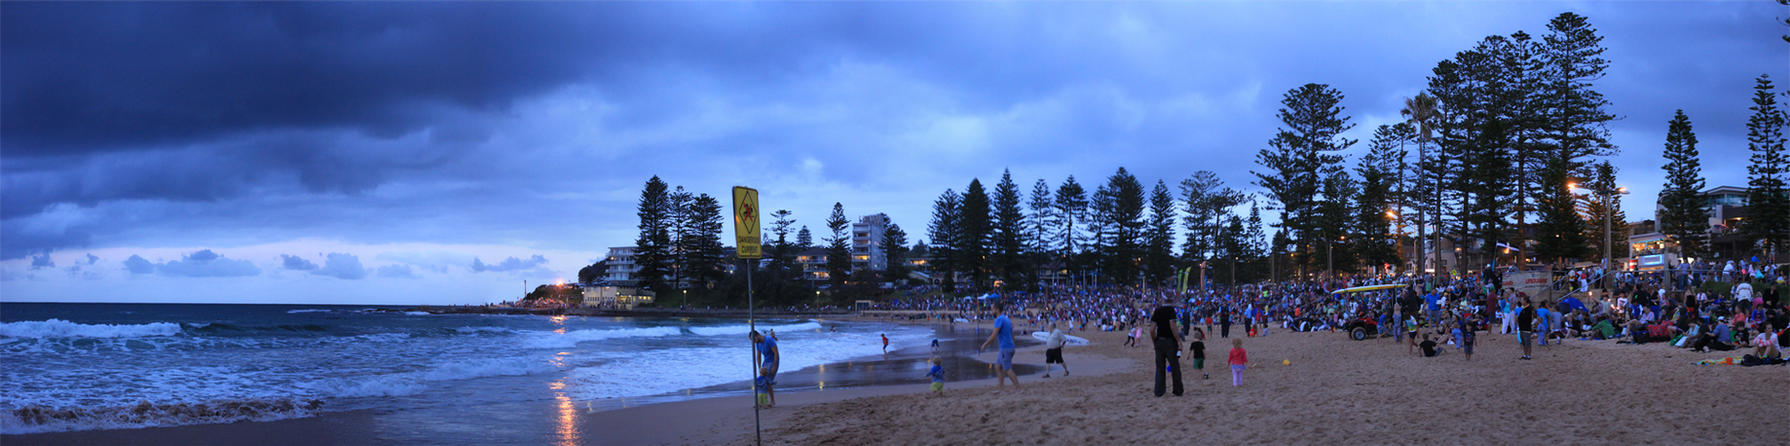 Dee Why Twilight Pano by TarJakArt